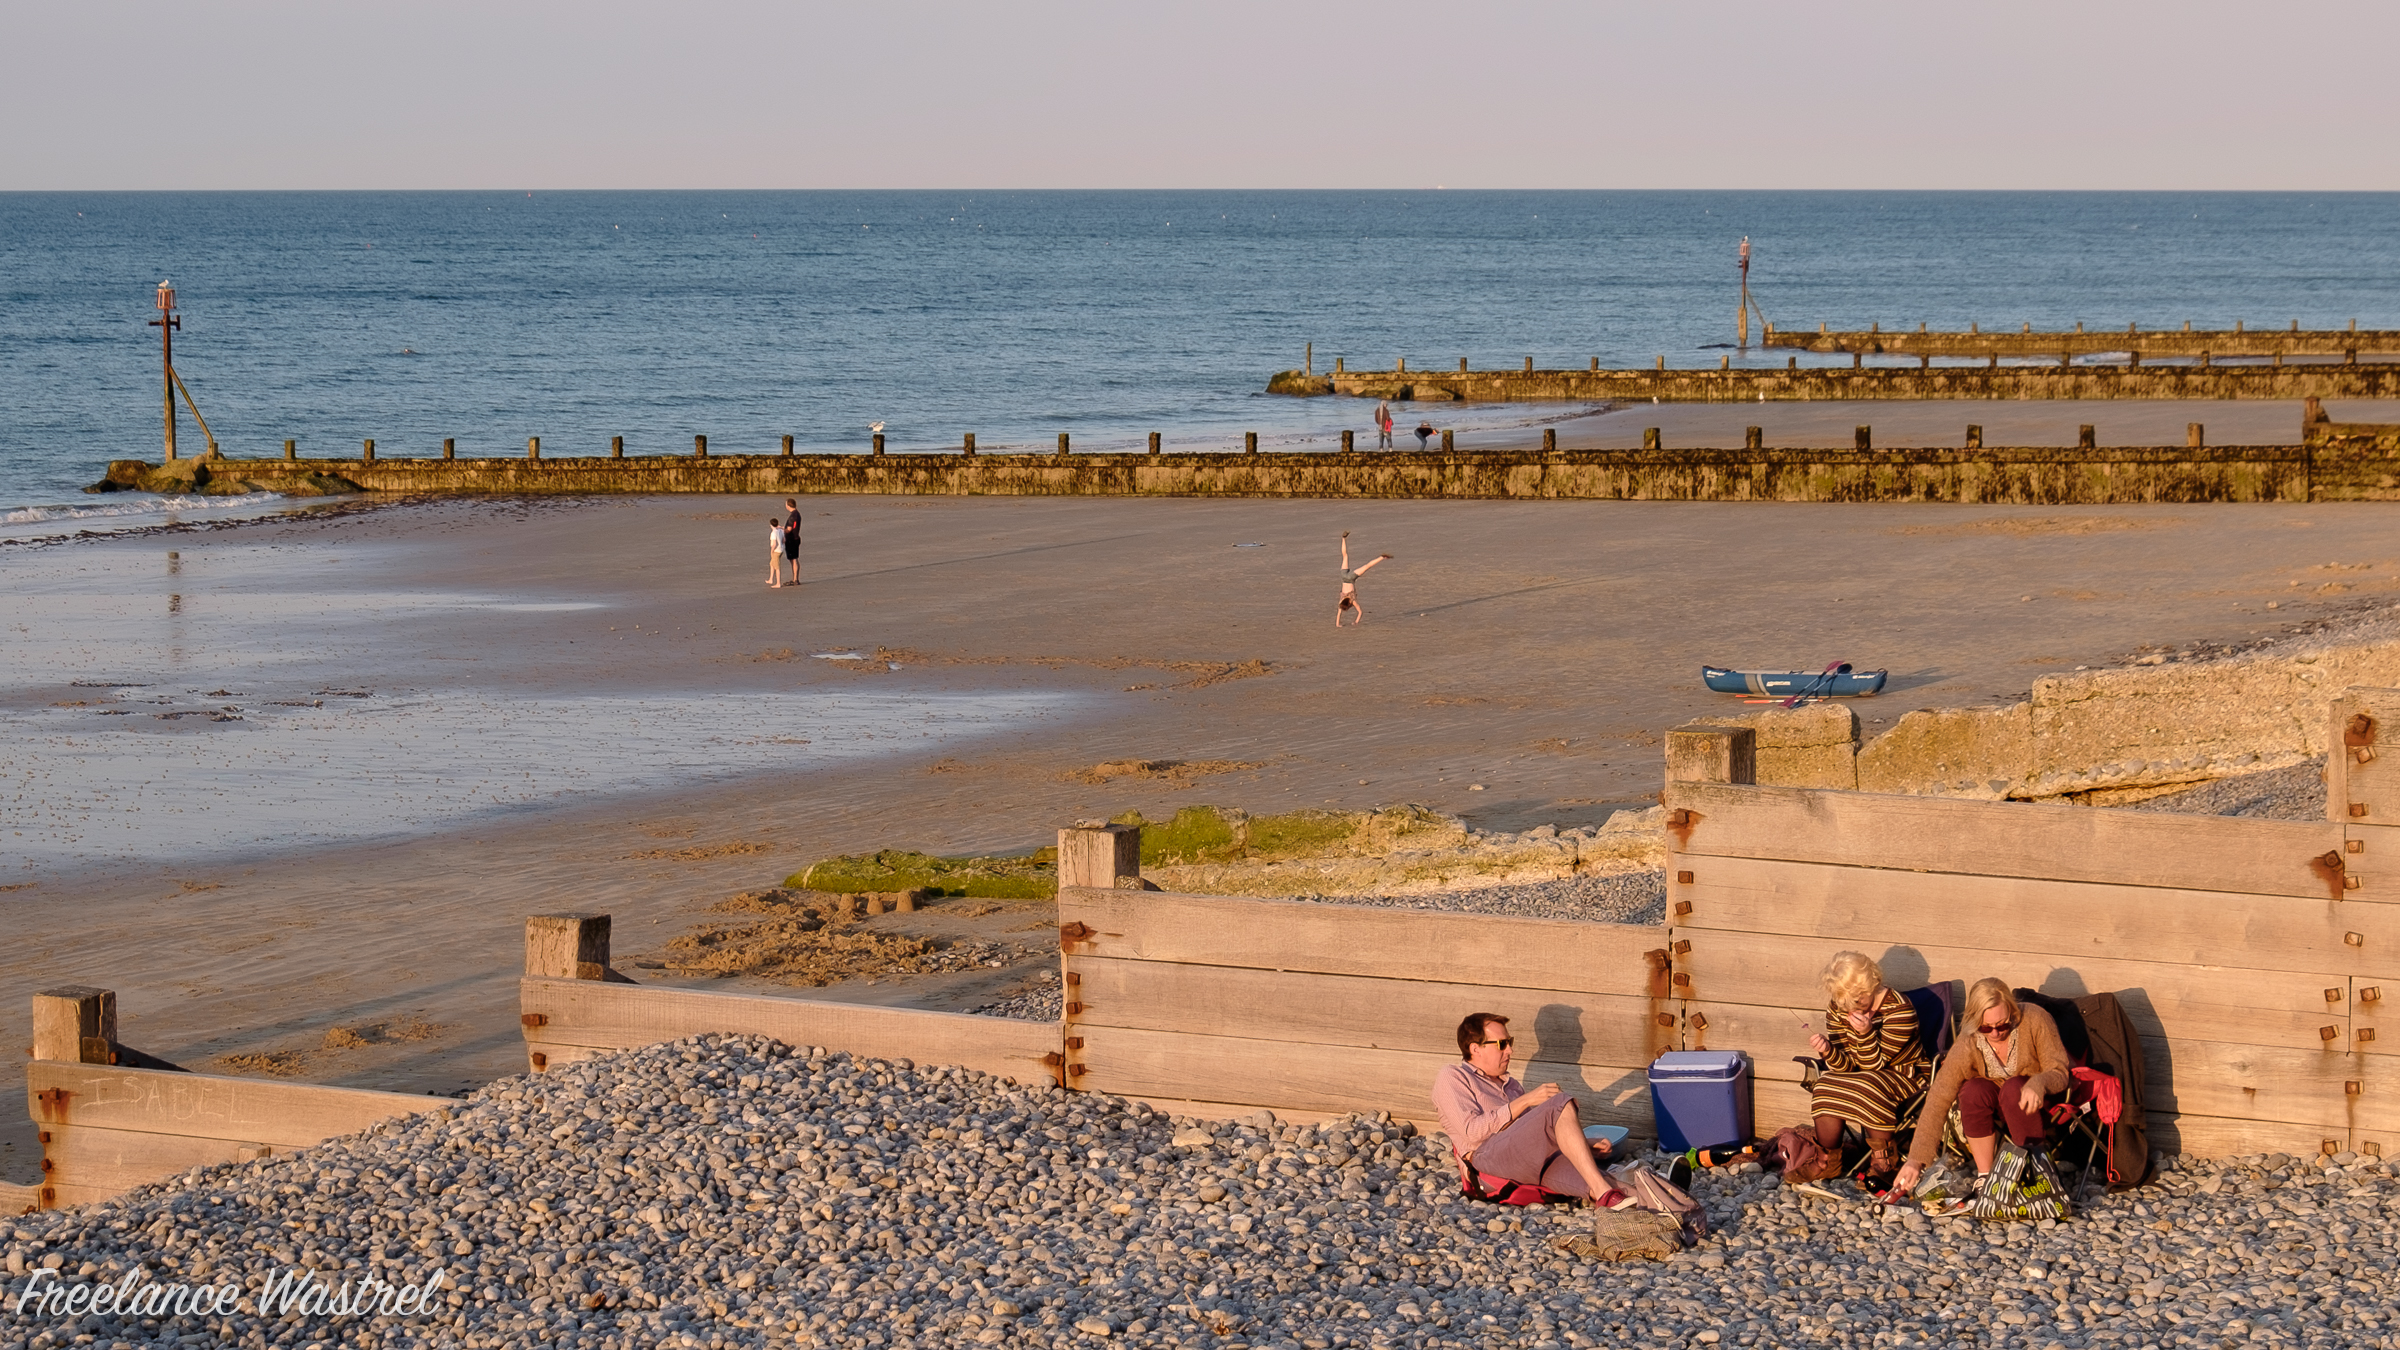 Picnic on the beach, Sheringham, September 2018